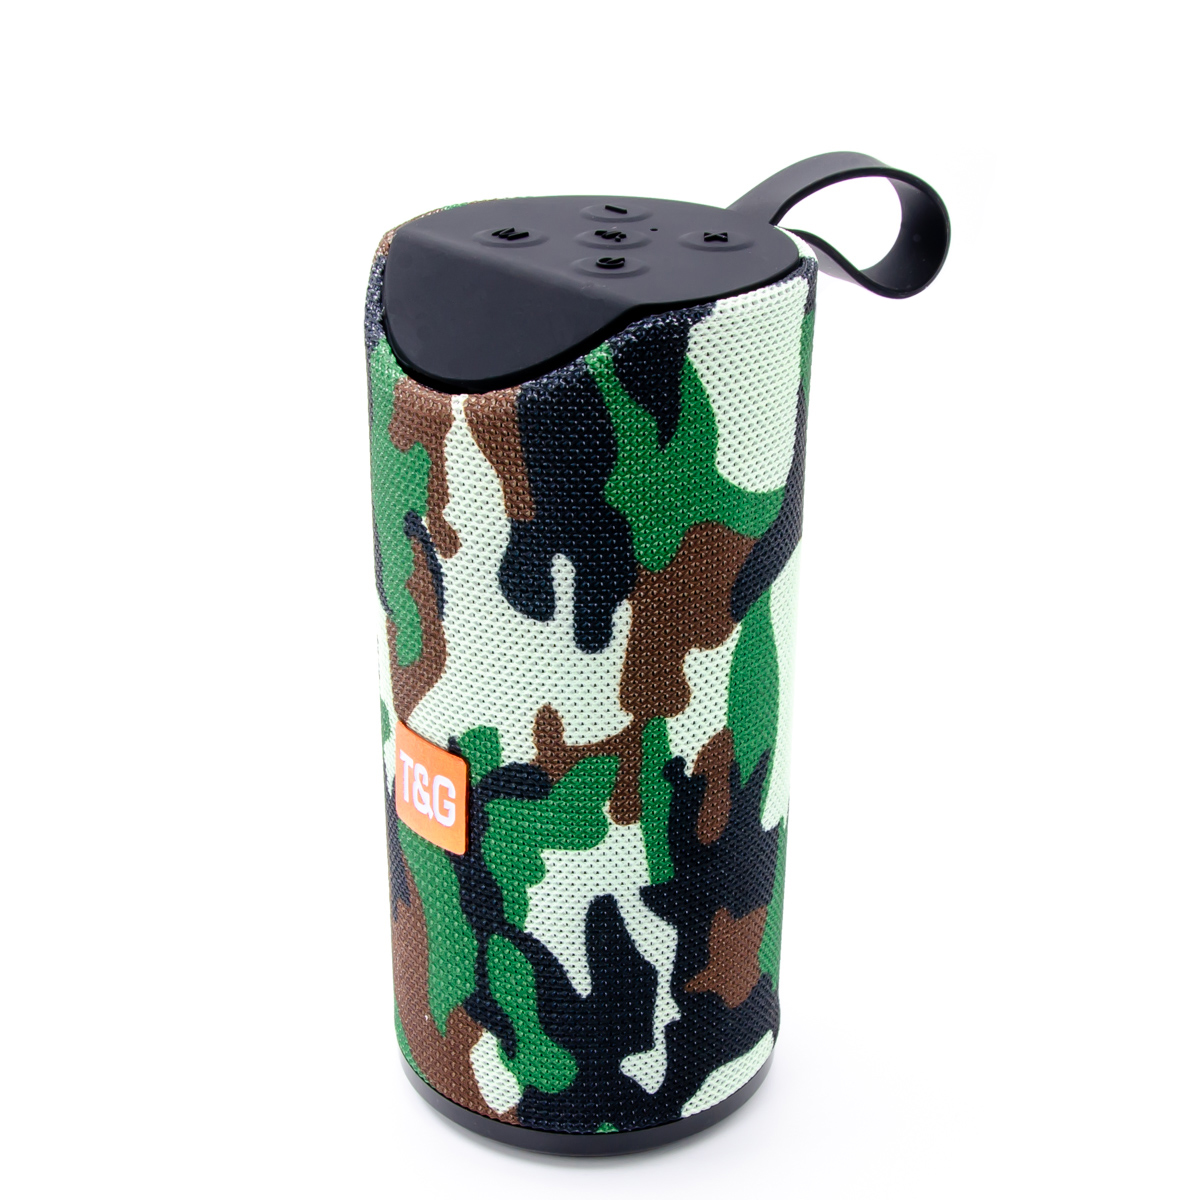 Tg 113 bluetooth speaker (army)